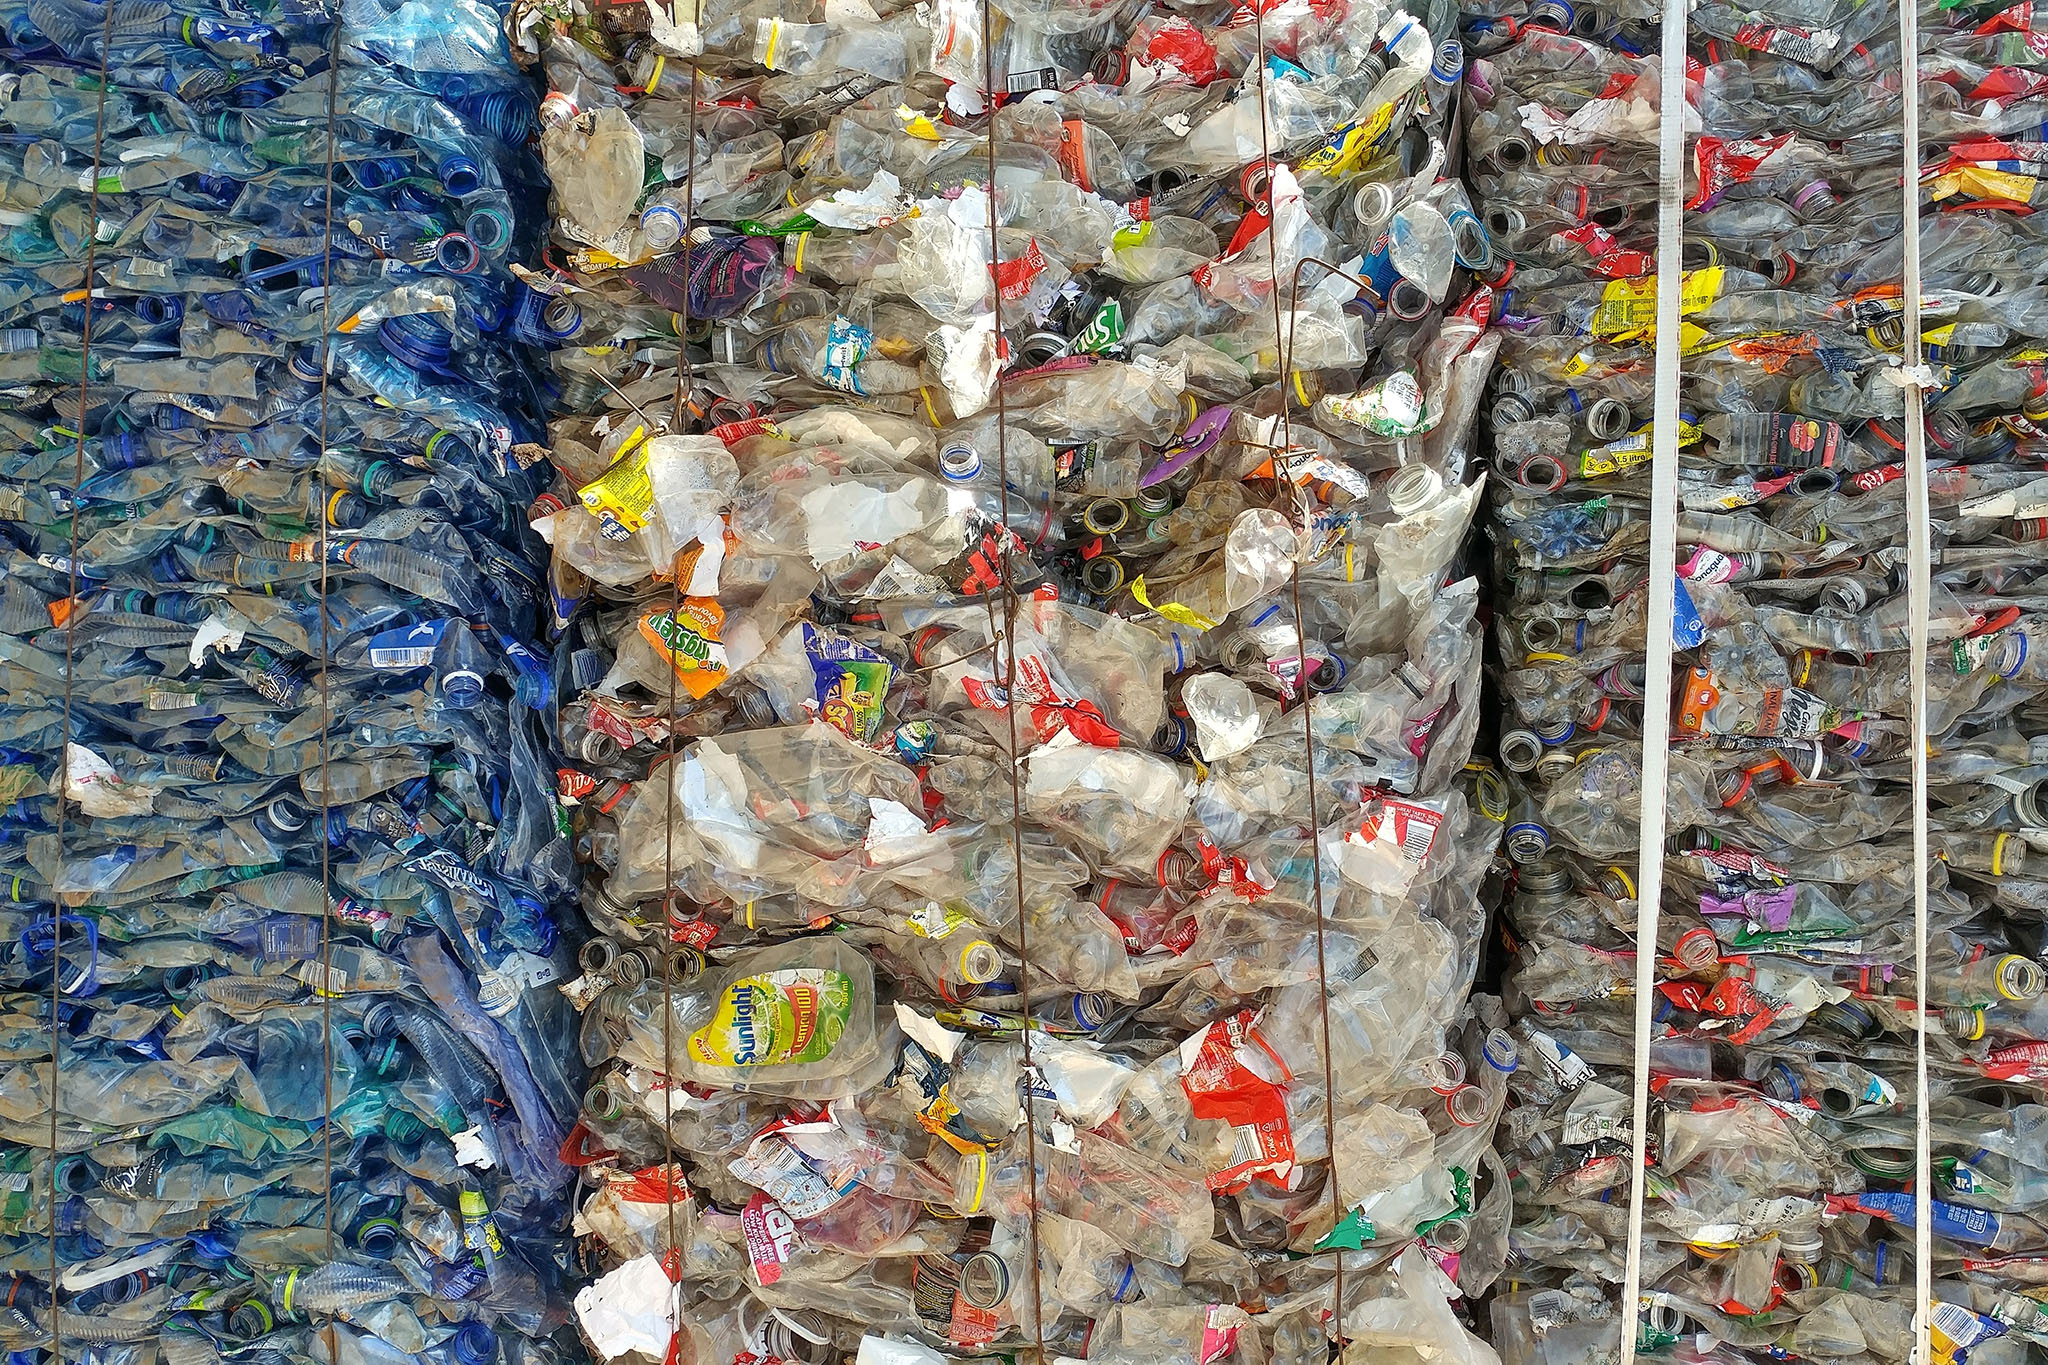 China's Import Ban Broke Plastic Recycling  Here's How to Fix It